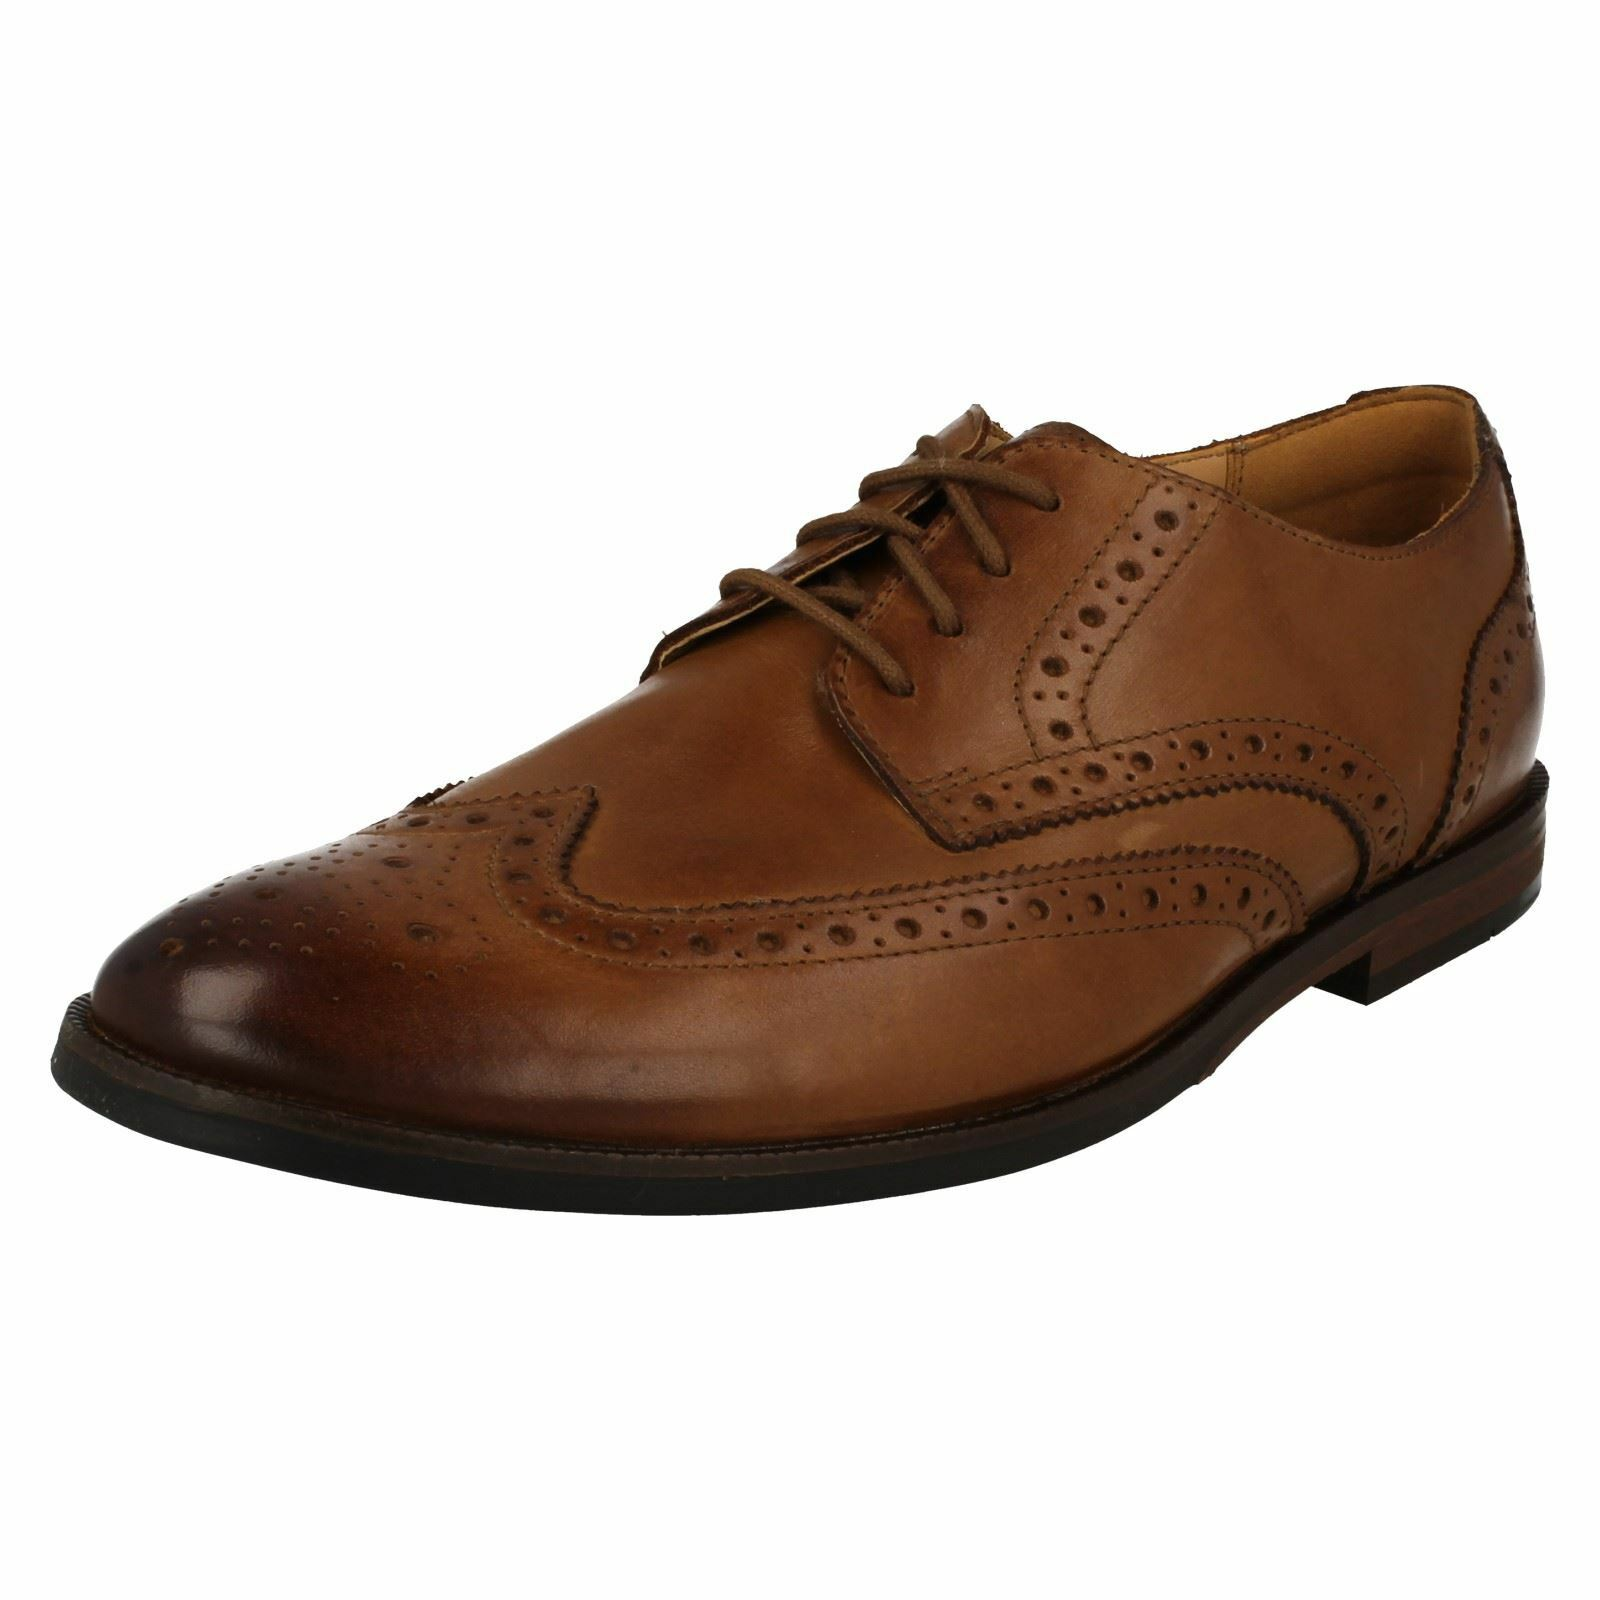 Clarks Mens Lace Up Brogue shoes Broyd Limit